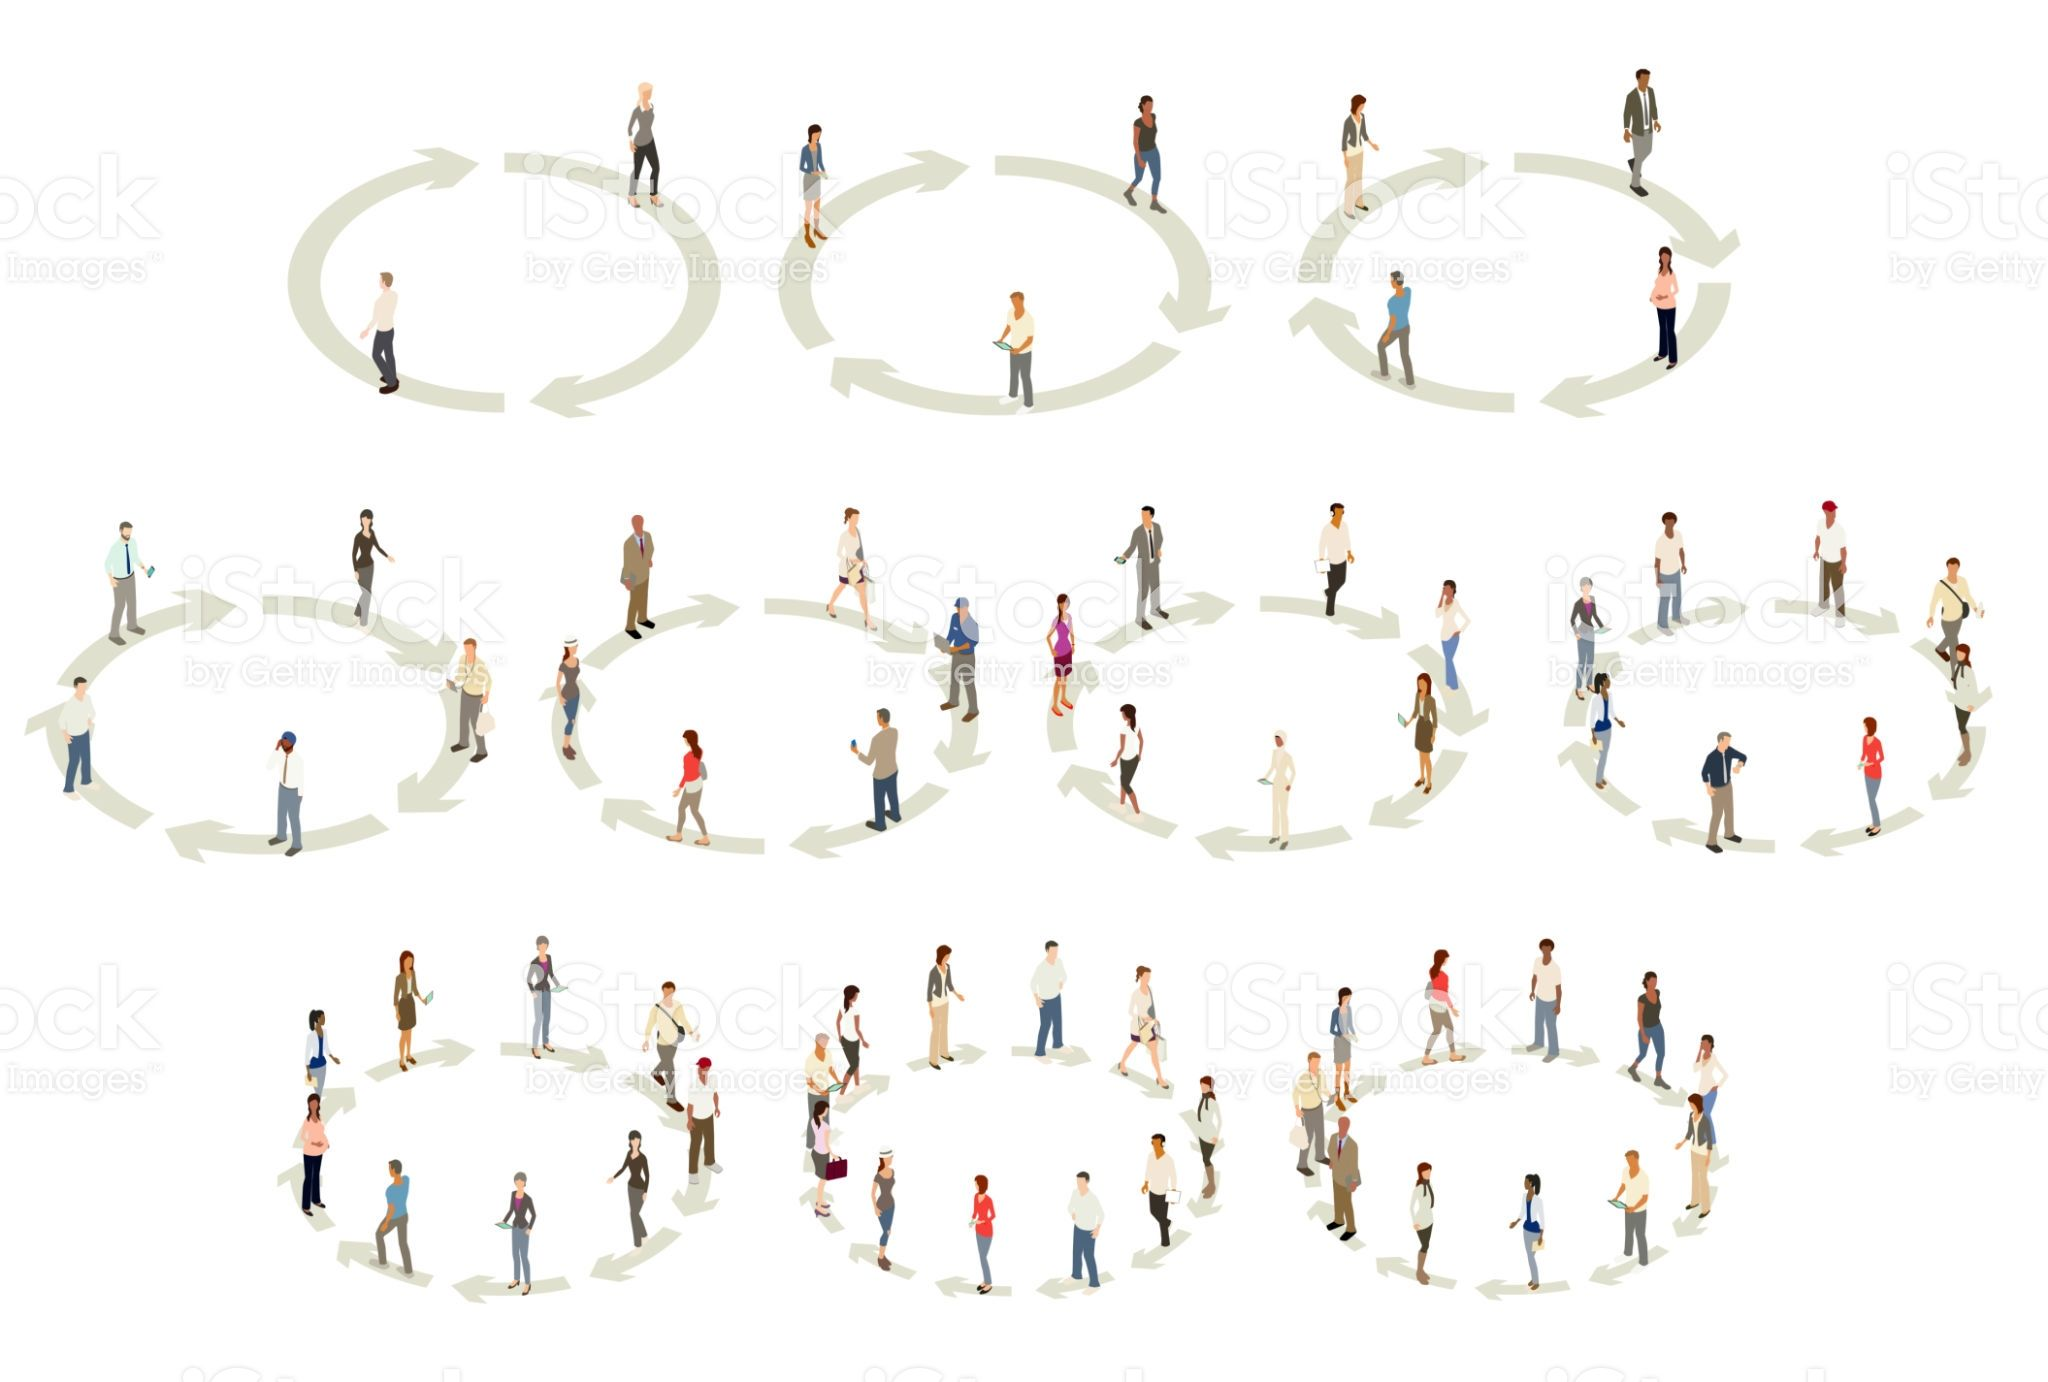 Illustrated people stand on circular diagrams formed by